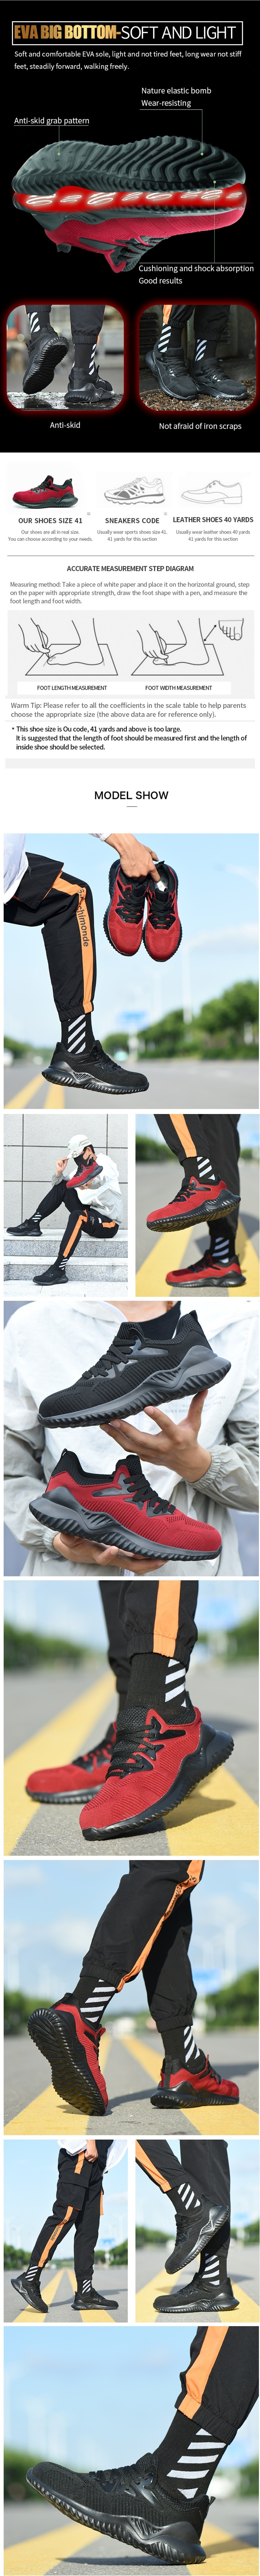 TENGOO Air-B Ultralight Fly Woven Safety Shoes Hiking Steel Toe Work Safety Mesh Anti-slip Anti-Collision Climbing Running Ball Shoes